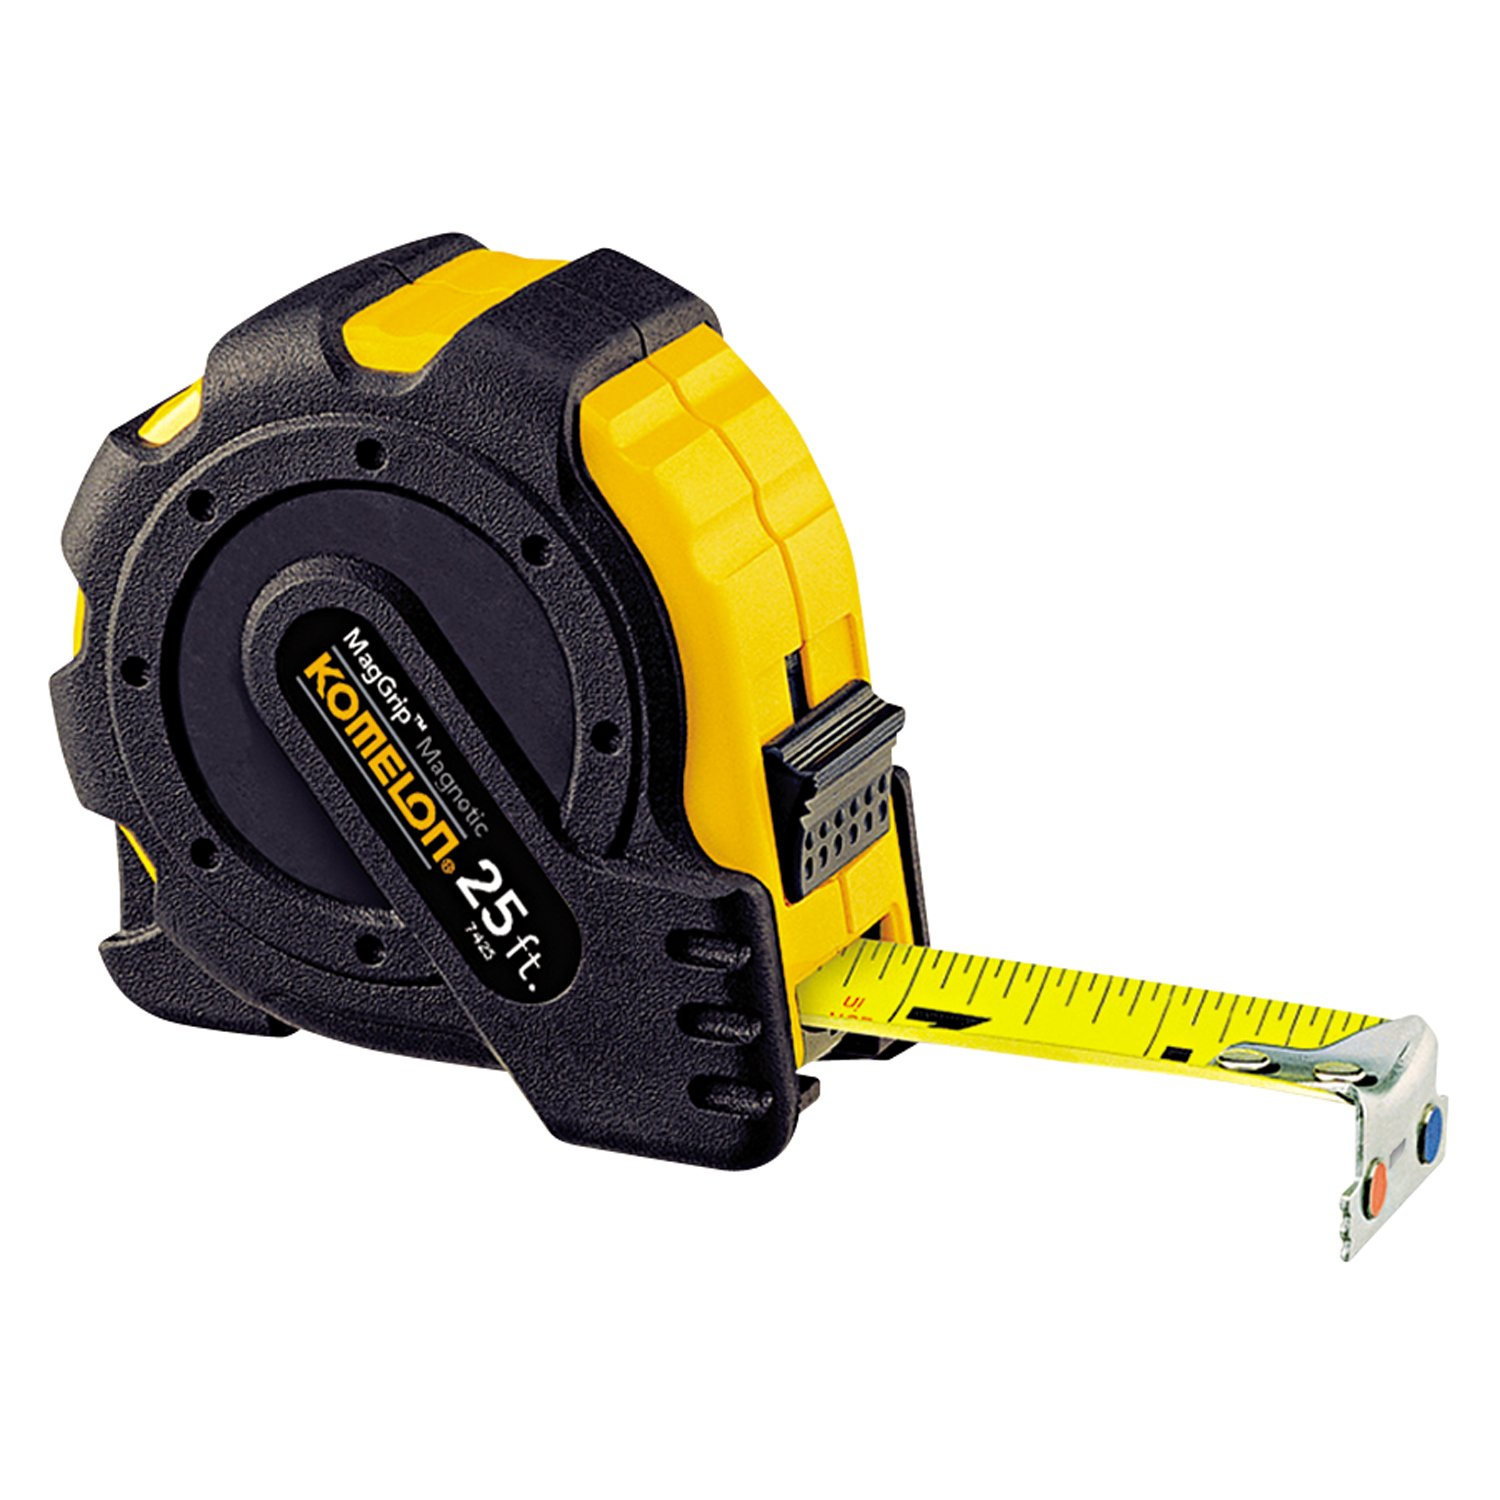 Komelon 7425 MagGrip 25-FootMeasuring Tape with Magnetic End